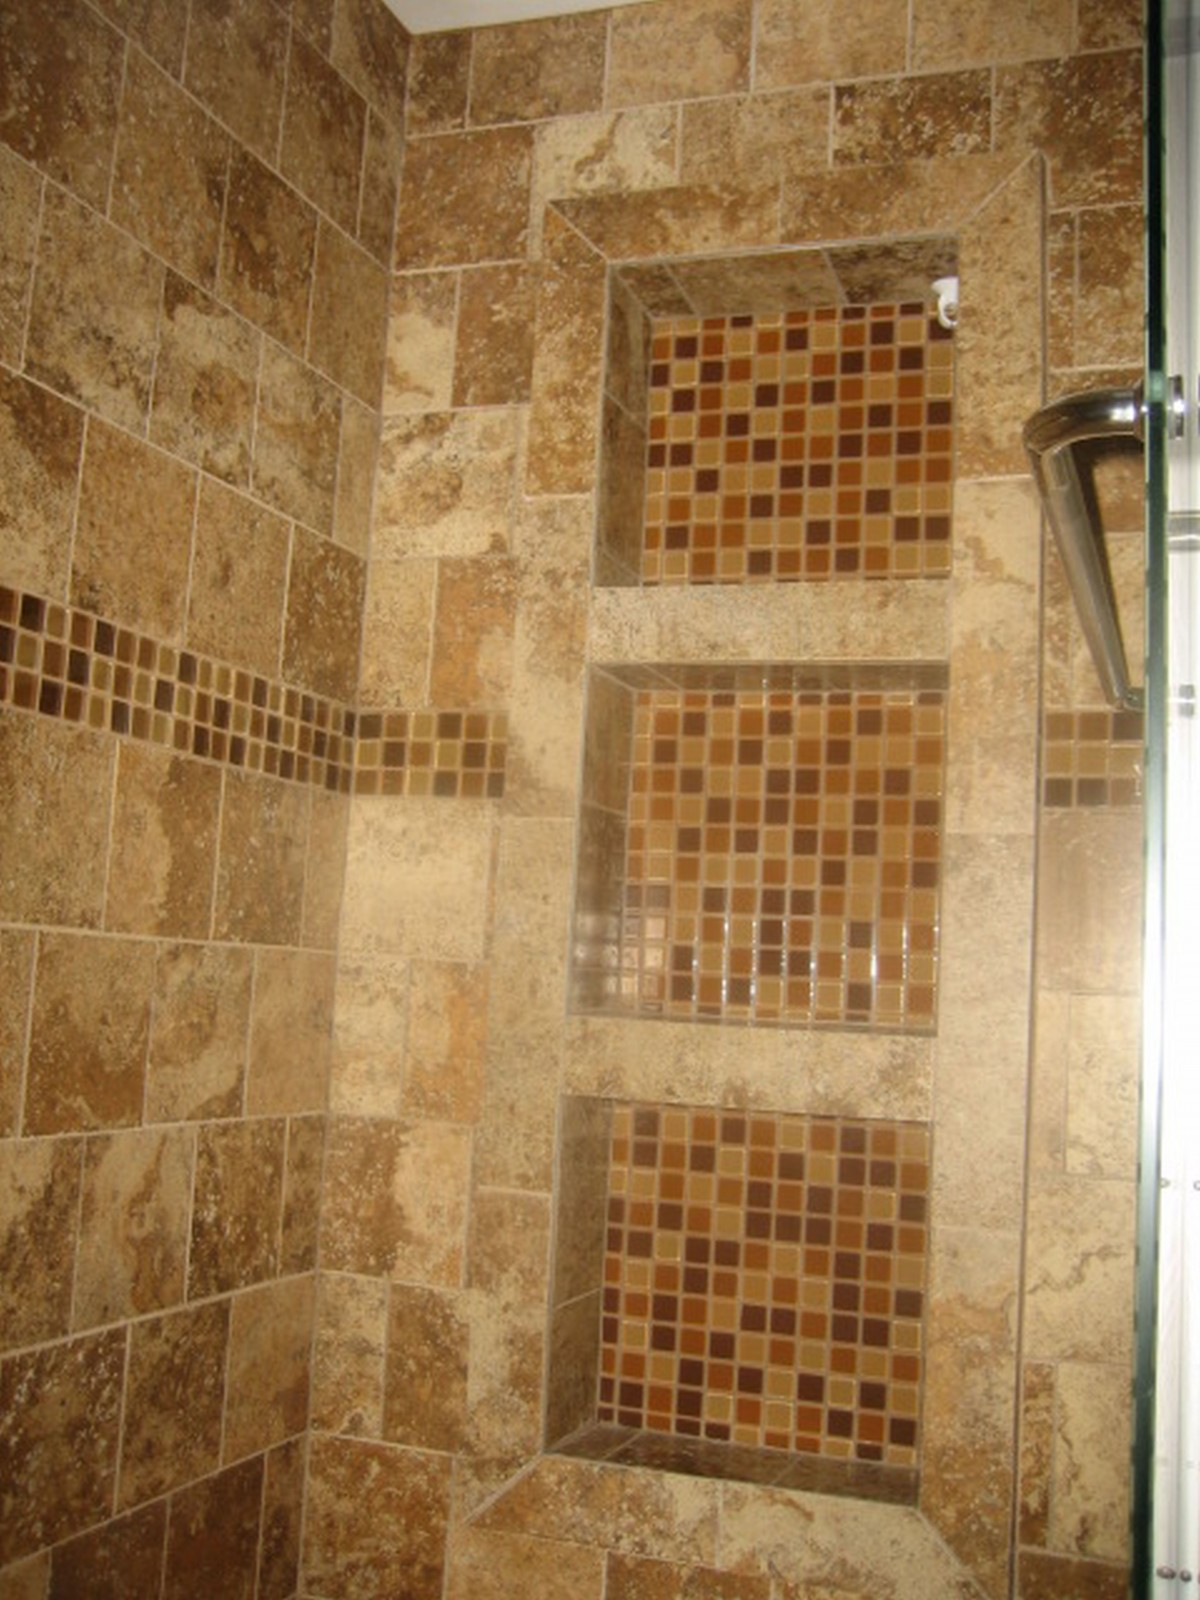 30 pictures of bathroom wall tile 12x12 for Bathroom wall tile designs pictures